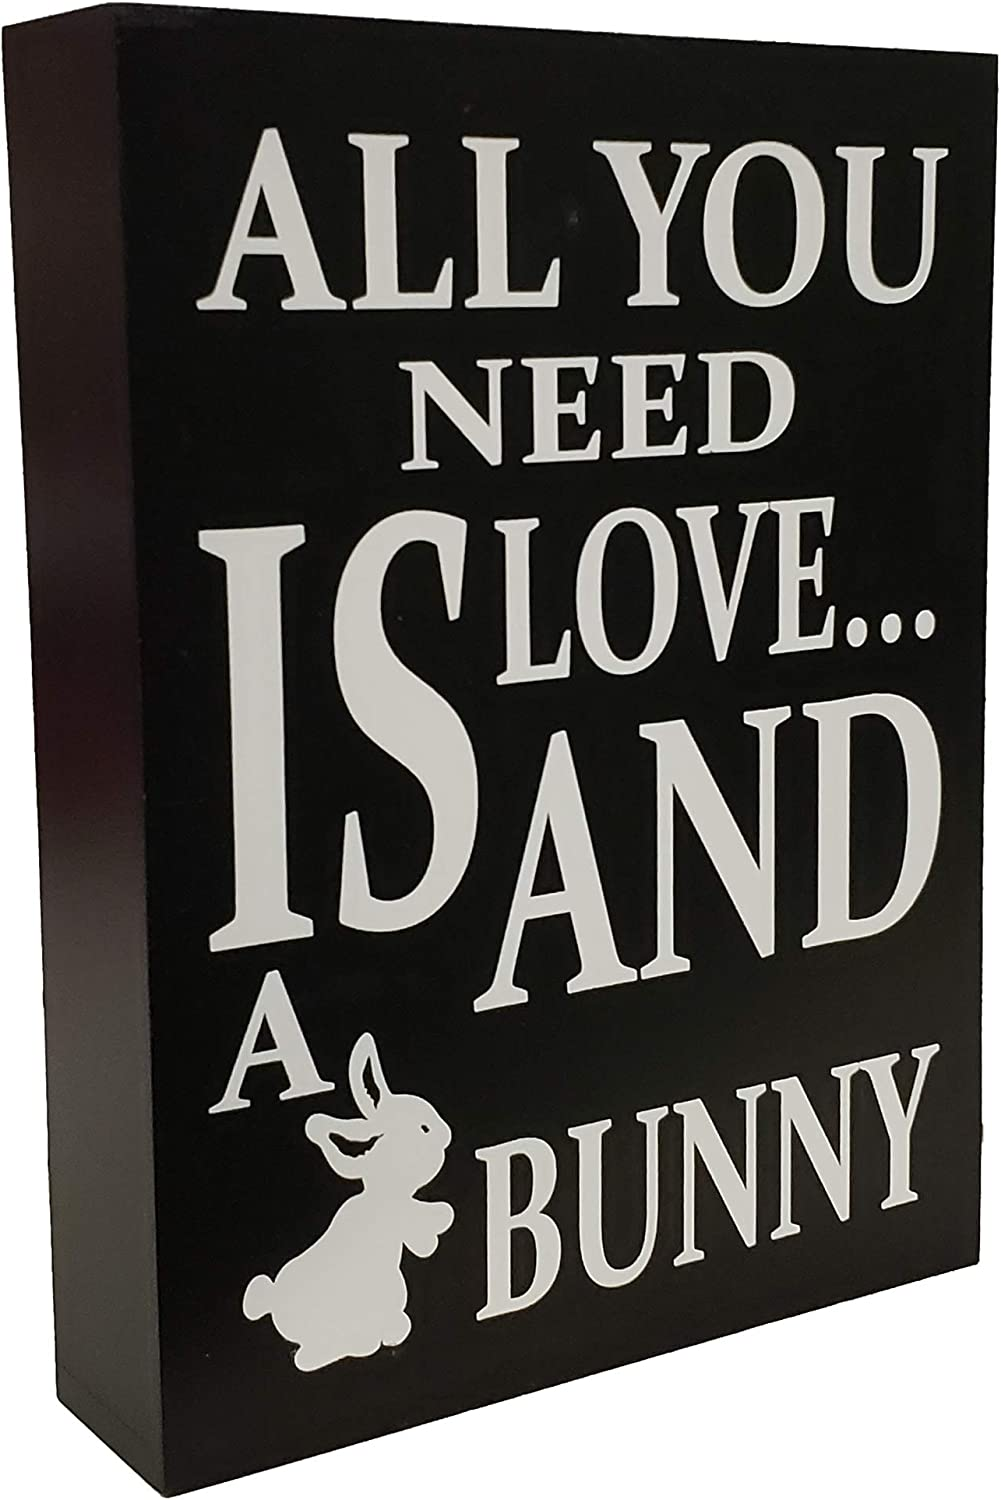 JennyGems - All You Need Is Love and a Bunny - Bunny Sign - Bunny Moms - Gifts for Bunny Moms - Rabbit Decor - Wood Sign